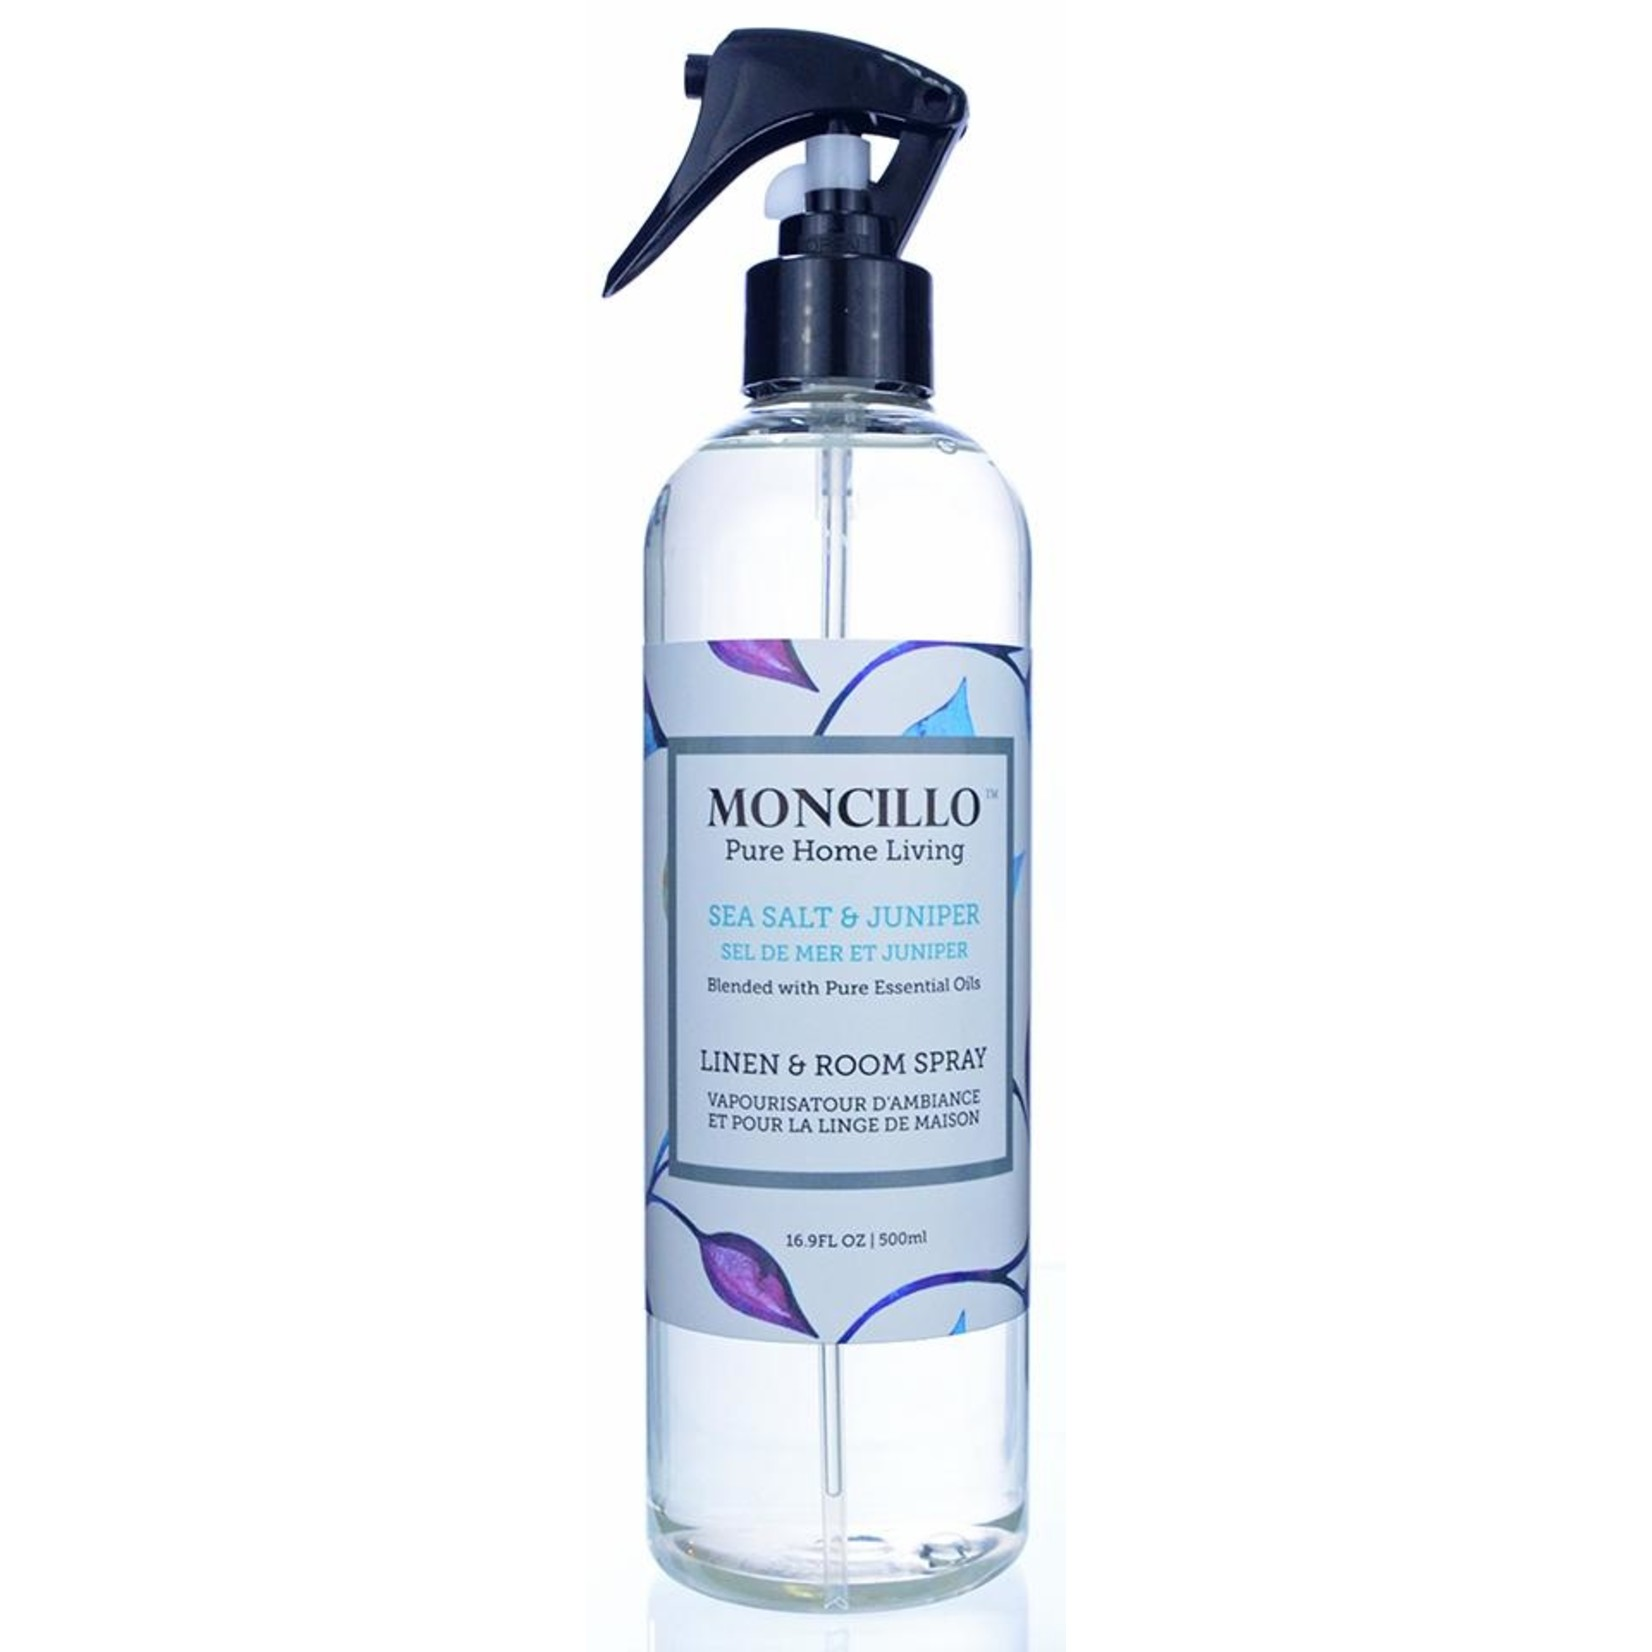 Finesse Home Moncillo Linen and Room Spray